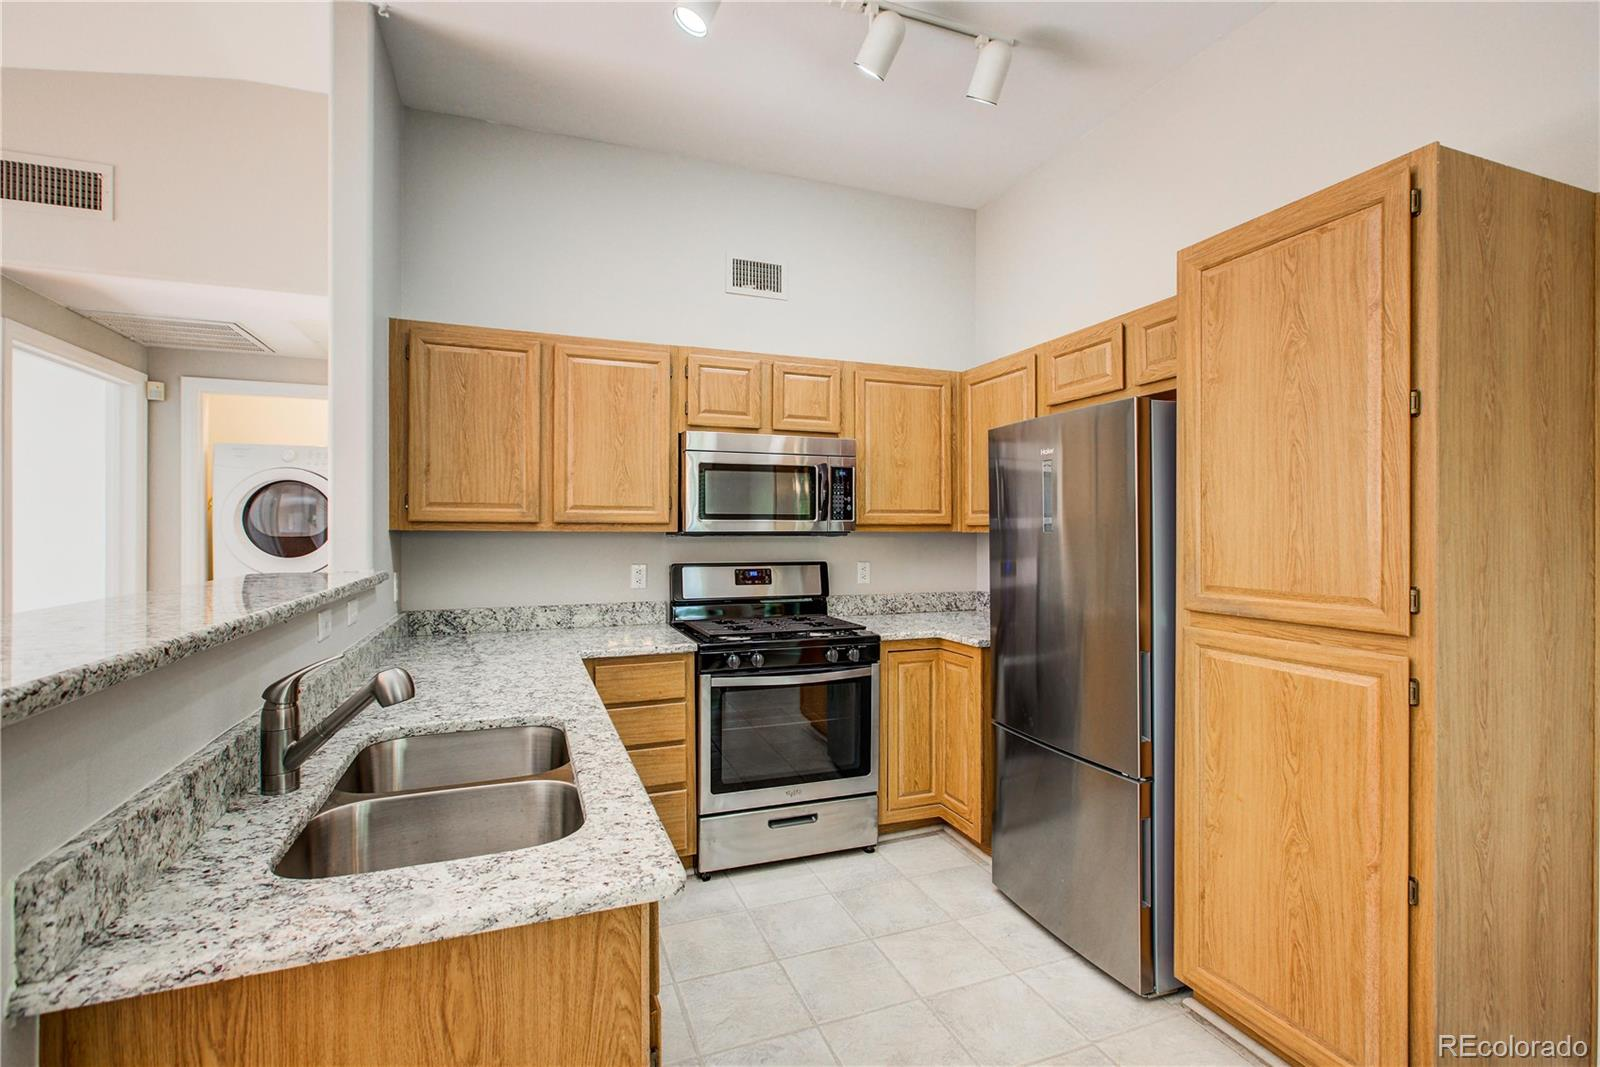 Don't miss this large updated 1 bedroom, 1 bathroom condominium in Highlands Ranch within walking distance to shopping and easy access to C-470. Mountain Views! The kitchen has granite counter tops, stainless steel appliances including microwave and new dishwasher. New stove and refrigerator!! Beautiful Southeast light floods the entire property and  you will love relaxing on the deck off the living room!  The master bedroom has a walk-in closet and bathroom just outside the hall with double sinks.  No need for a gym membership, this amazing community includes a fitness center and pool within walk distance of your new home. Quick closing available.